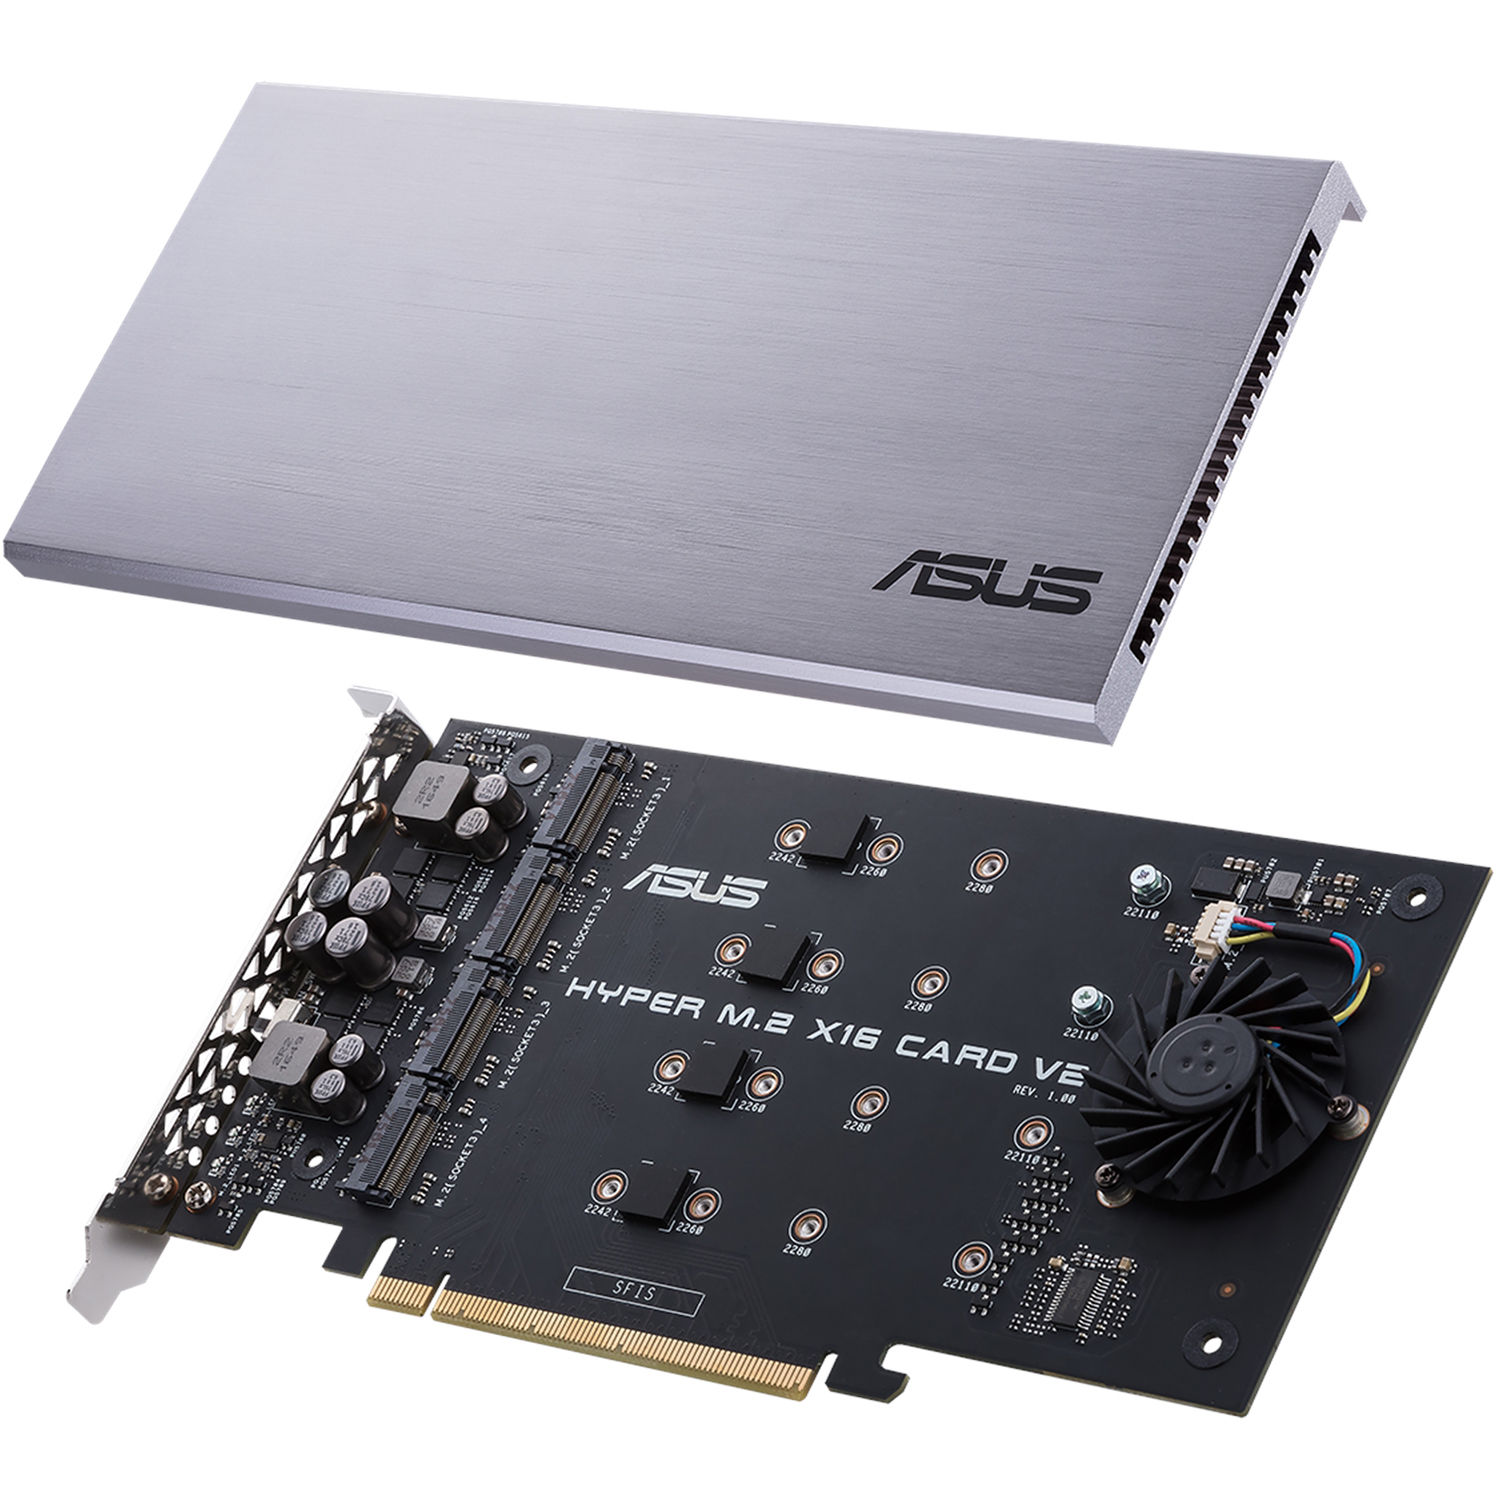 Asus Hyper M.2 X16 Pcie 3.0 X4 Expansion Card V2 Supports 4 Nvme M.2 2242//2260//